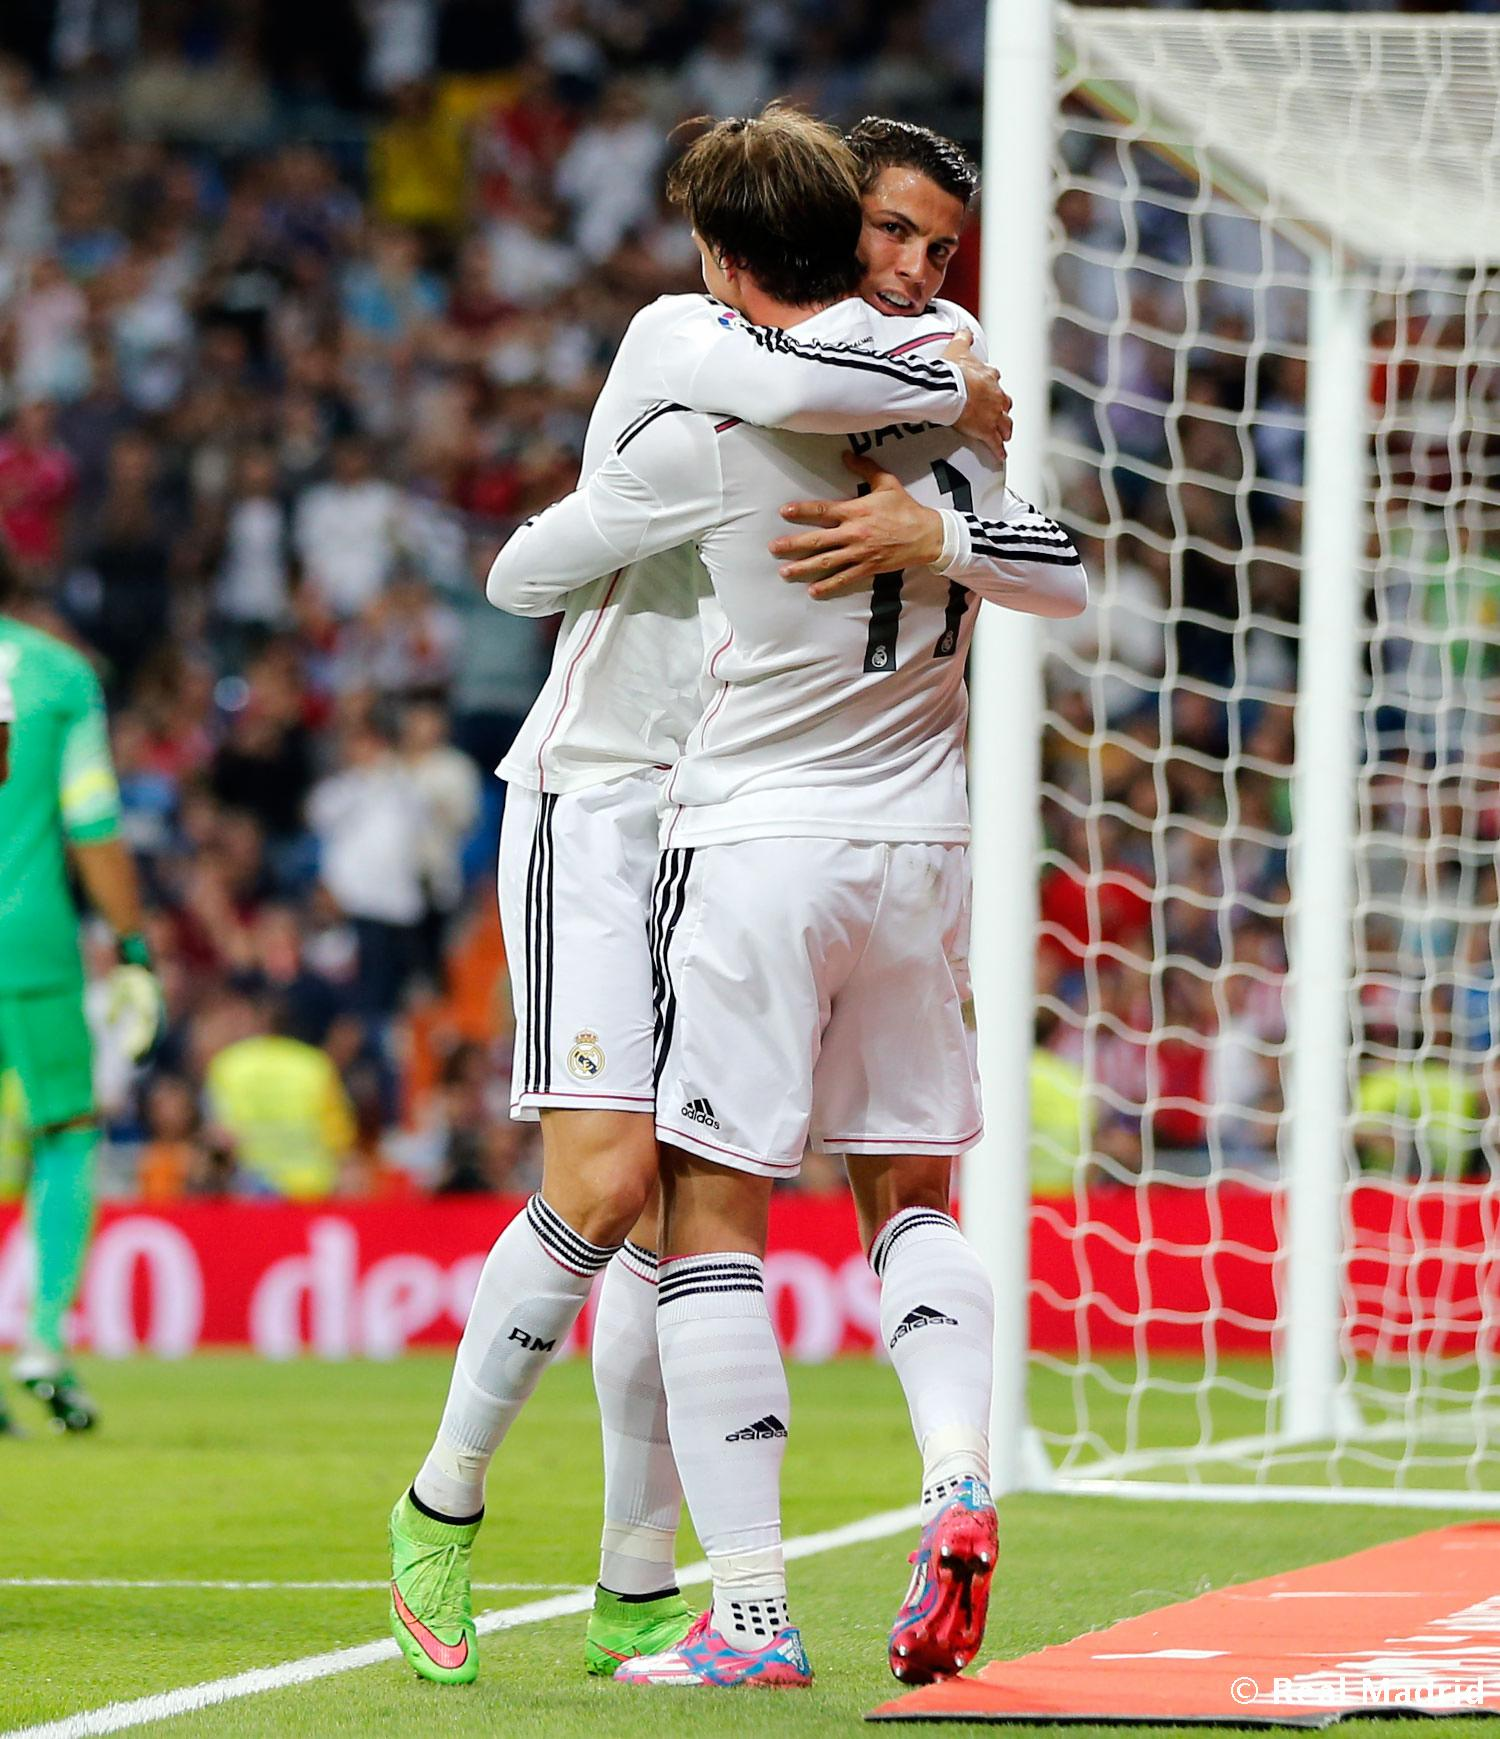 Real Madrid - Real Madrid - Athletic Club - 05-10-2014